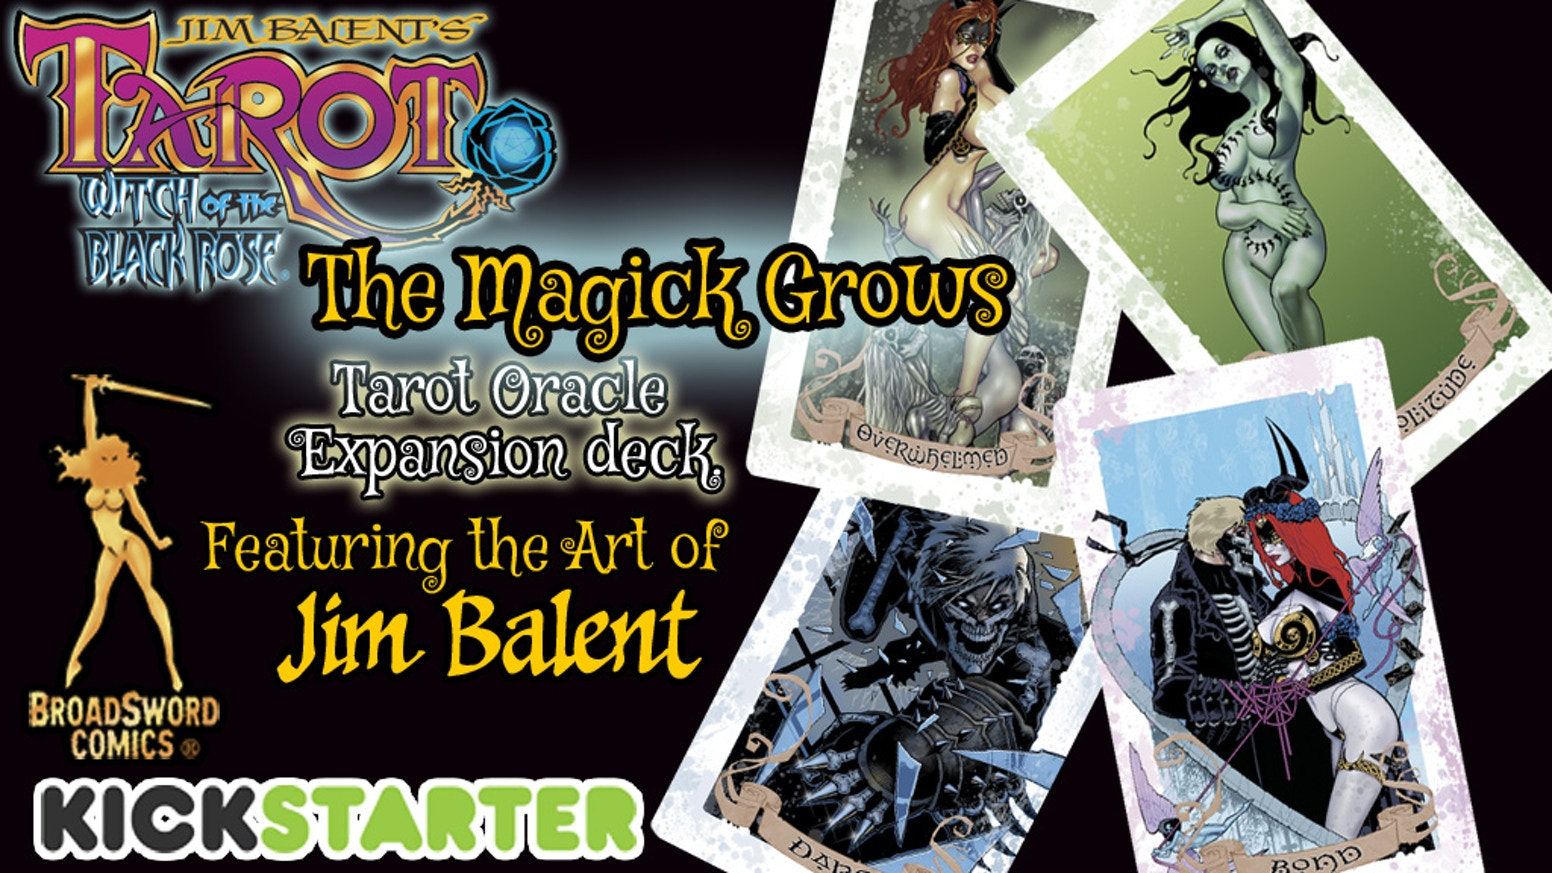 Jim Balent's Tarot, Witch of the Black Rose Oracle Deck